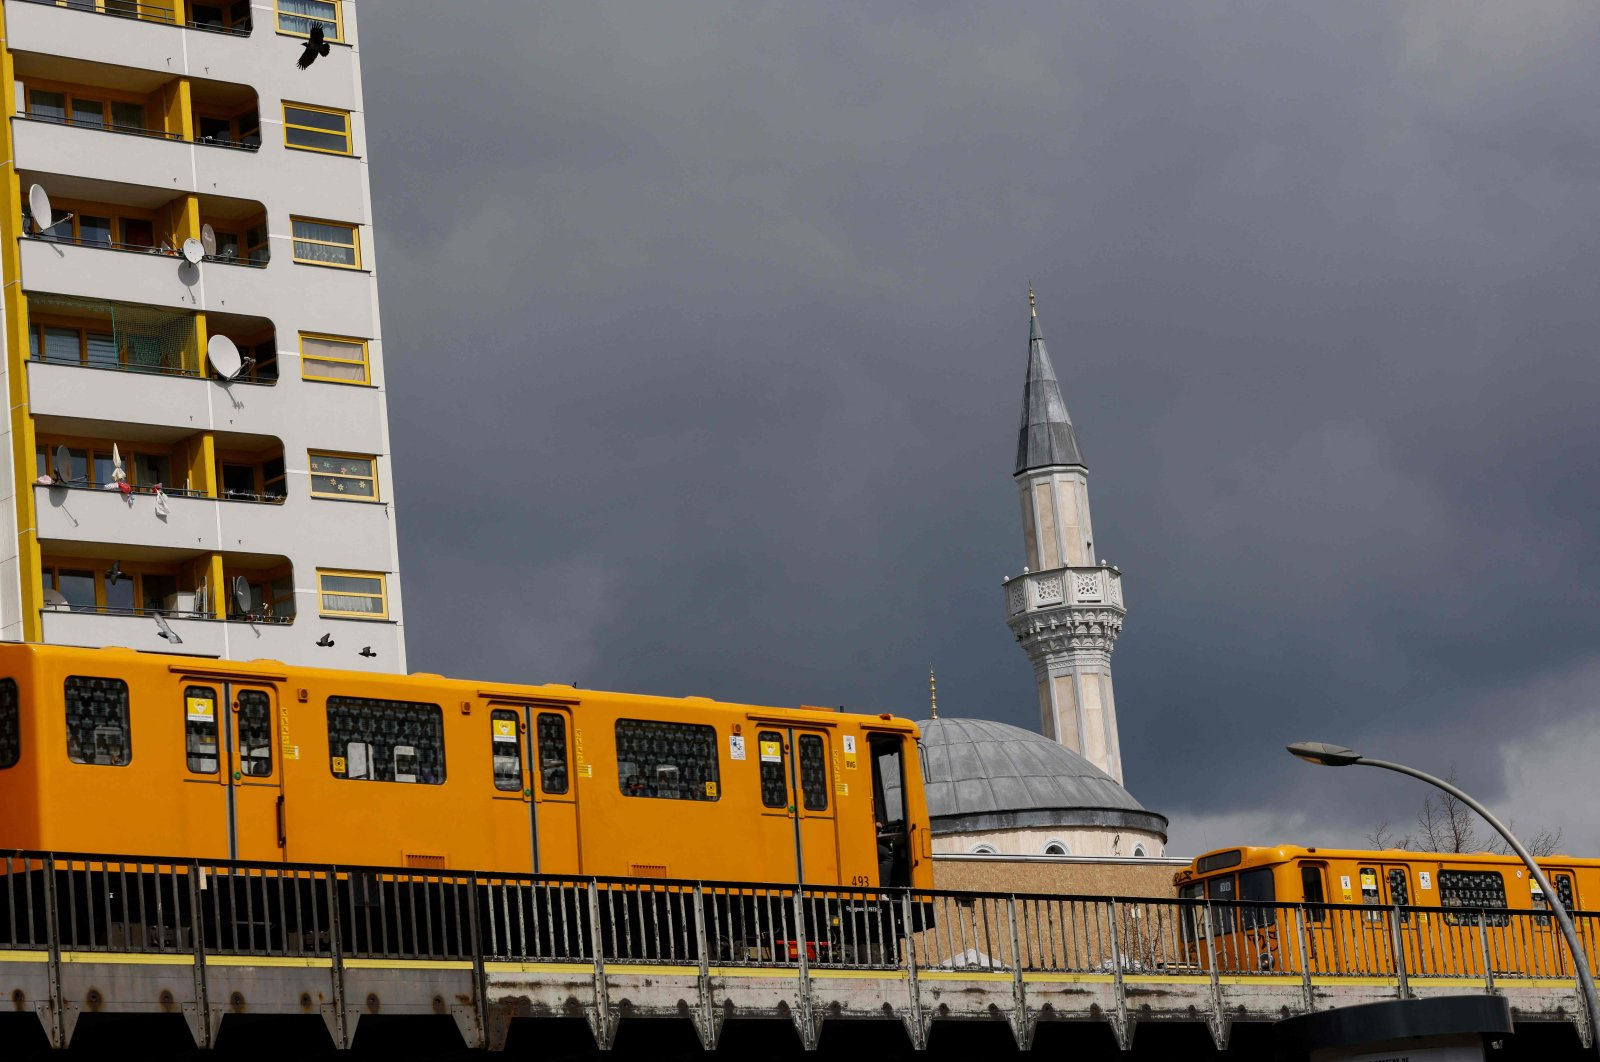 Two U-bahn subway trains drive past the Mevlana Mosque in Berlin's Kreuzberg district on April 14, 2021, a day after the start the Muslim holy fasting month of Ramadan. (Photo by David GANNON / AFP)